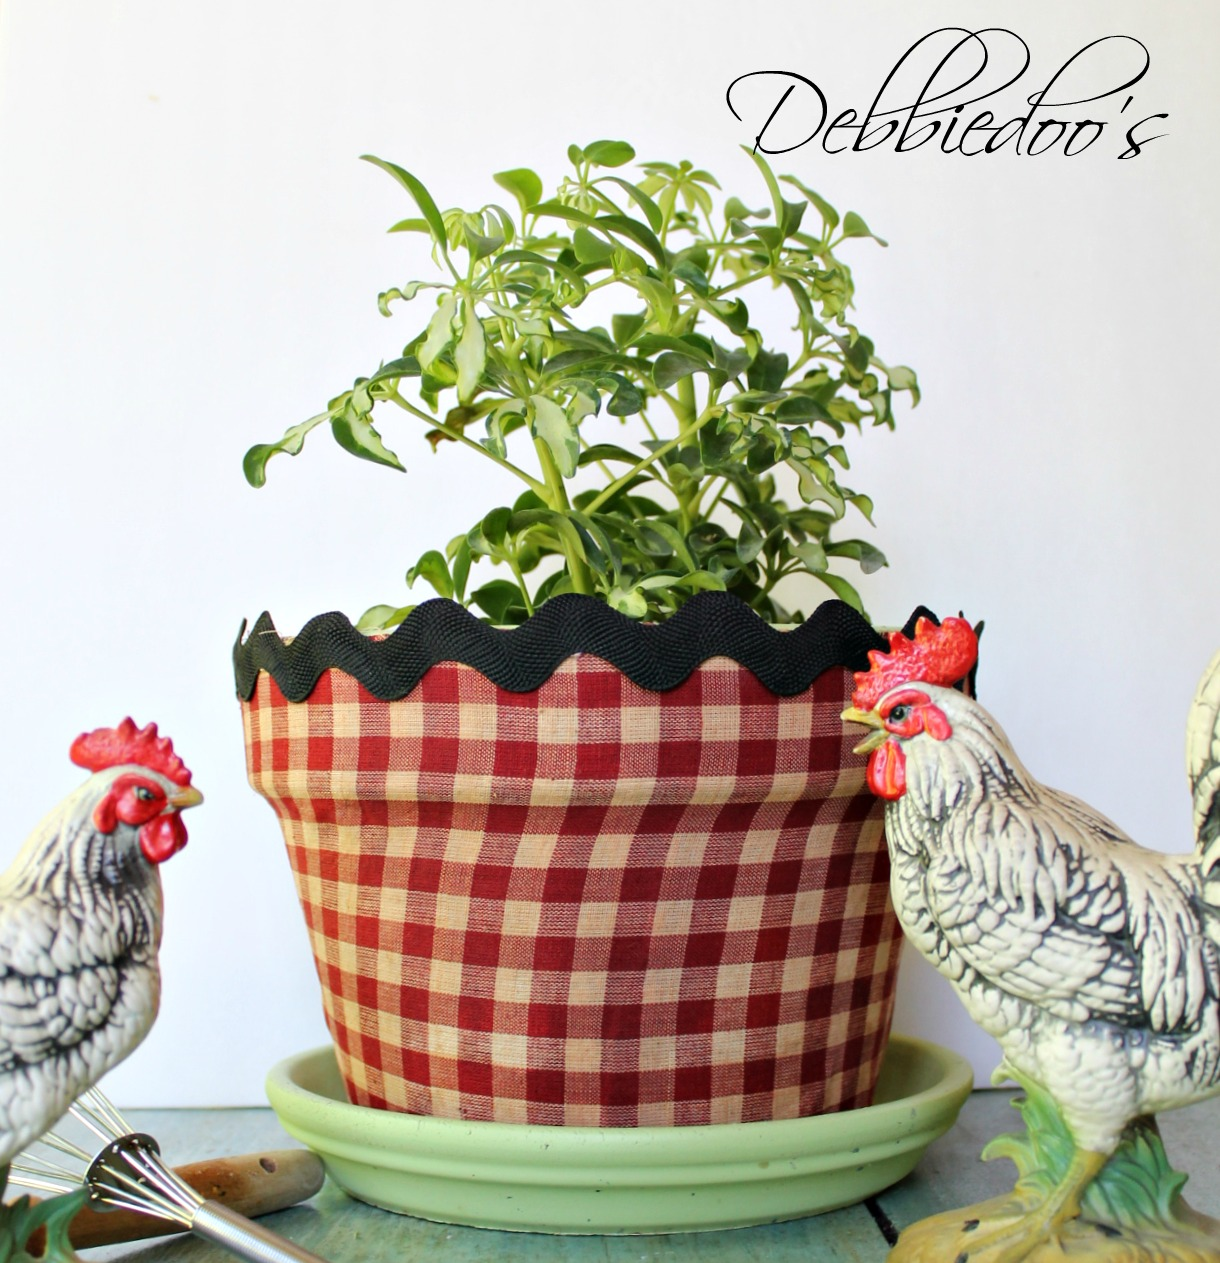 Mod podge terra cotta pots with fabric and a vintage recipe book 021